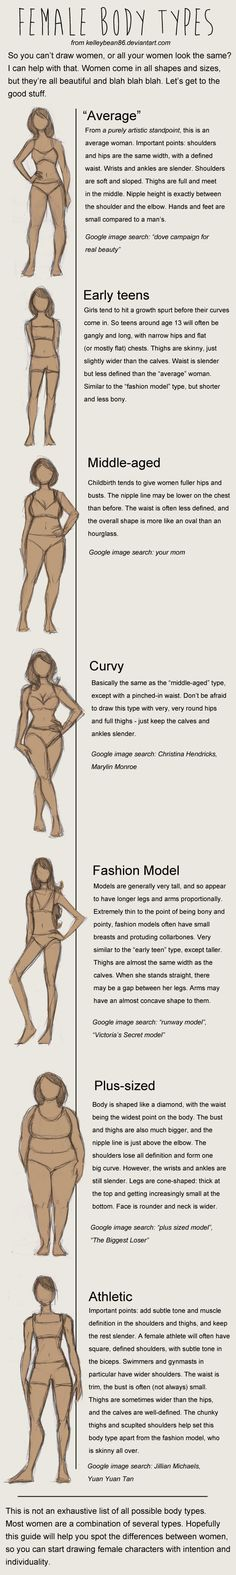 Draw Female Body Types by kelleybean86.deviantart.com on @deviantART